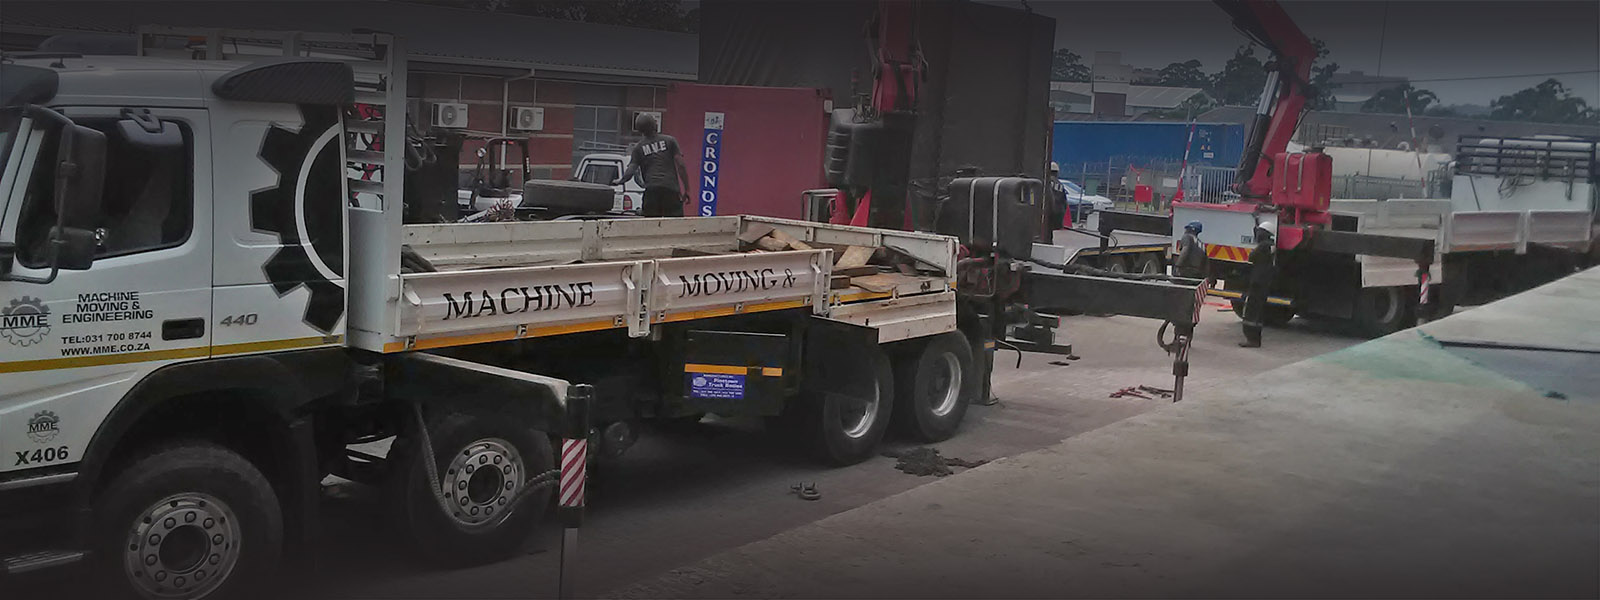 transport-long-distance-vehicles-transport-crane-truck-mme-Machine-Moving-Engineering-experts-machinery-equipment-Gauteng-KZN